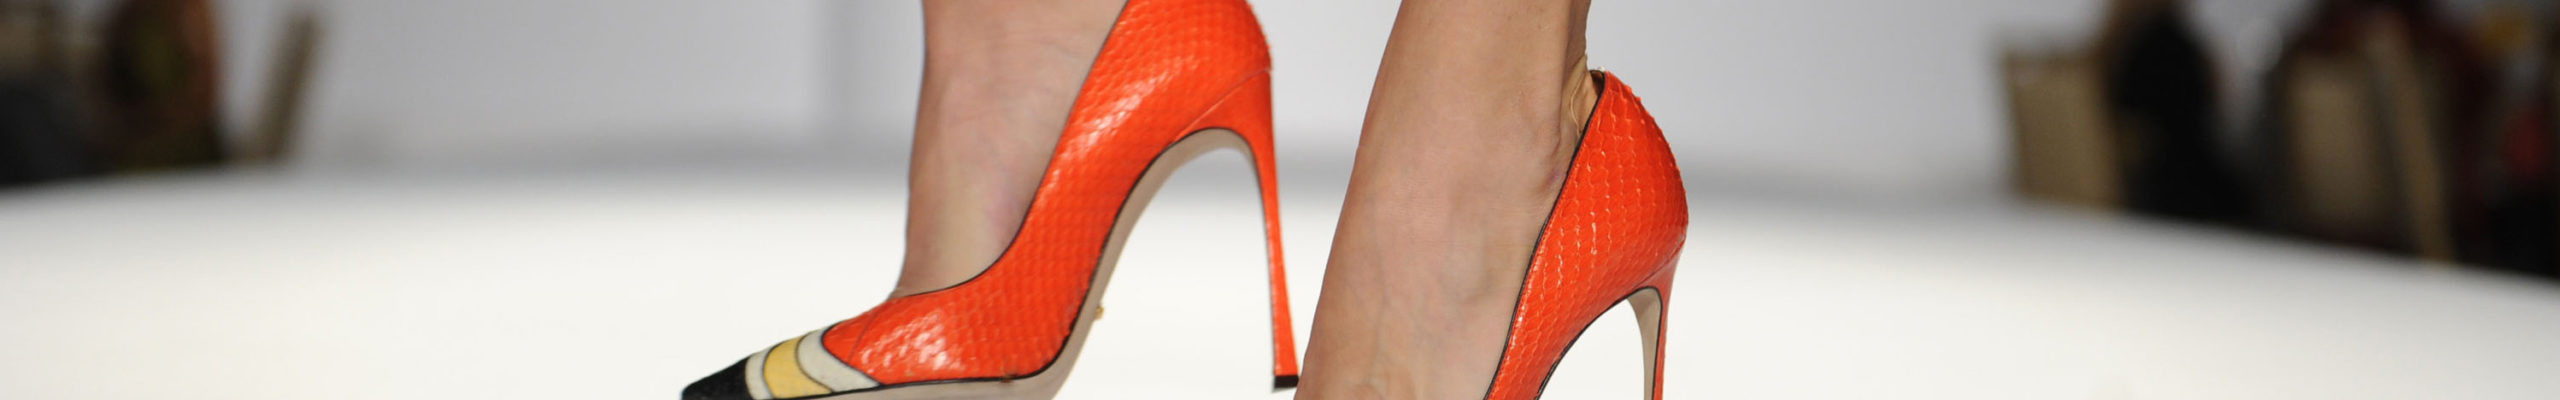 WWS_DSC_3589-orange_pumps